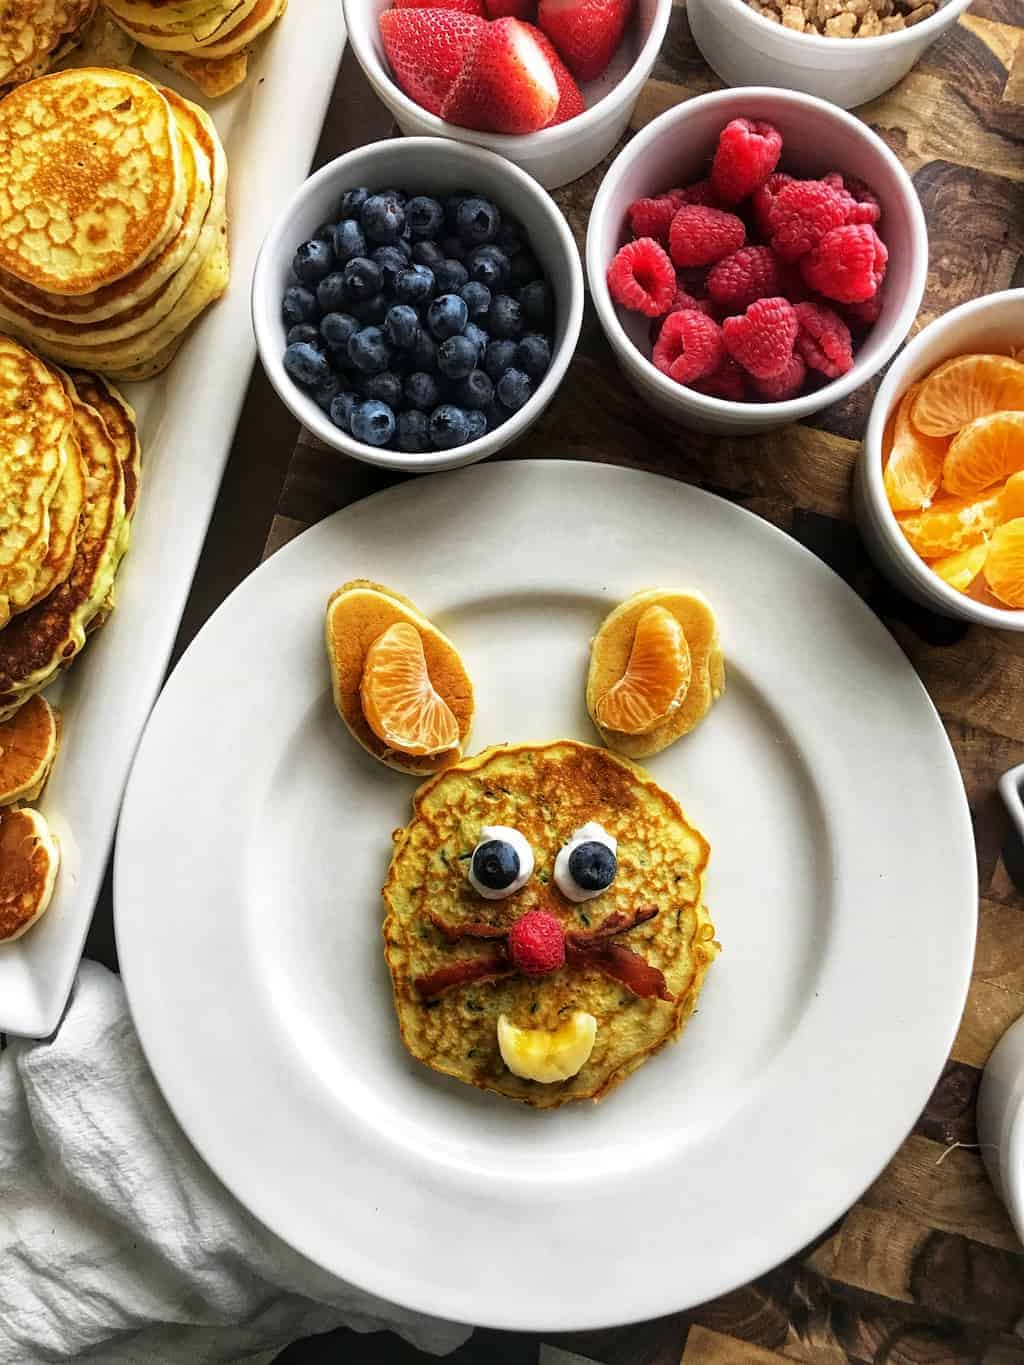 Easy recipes for kids. These bisquick recipes are perfect for kids cooking. Kids can easily make these animal pancakes and they are the perfect sleepover breakfast idea.